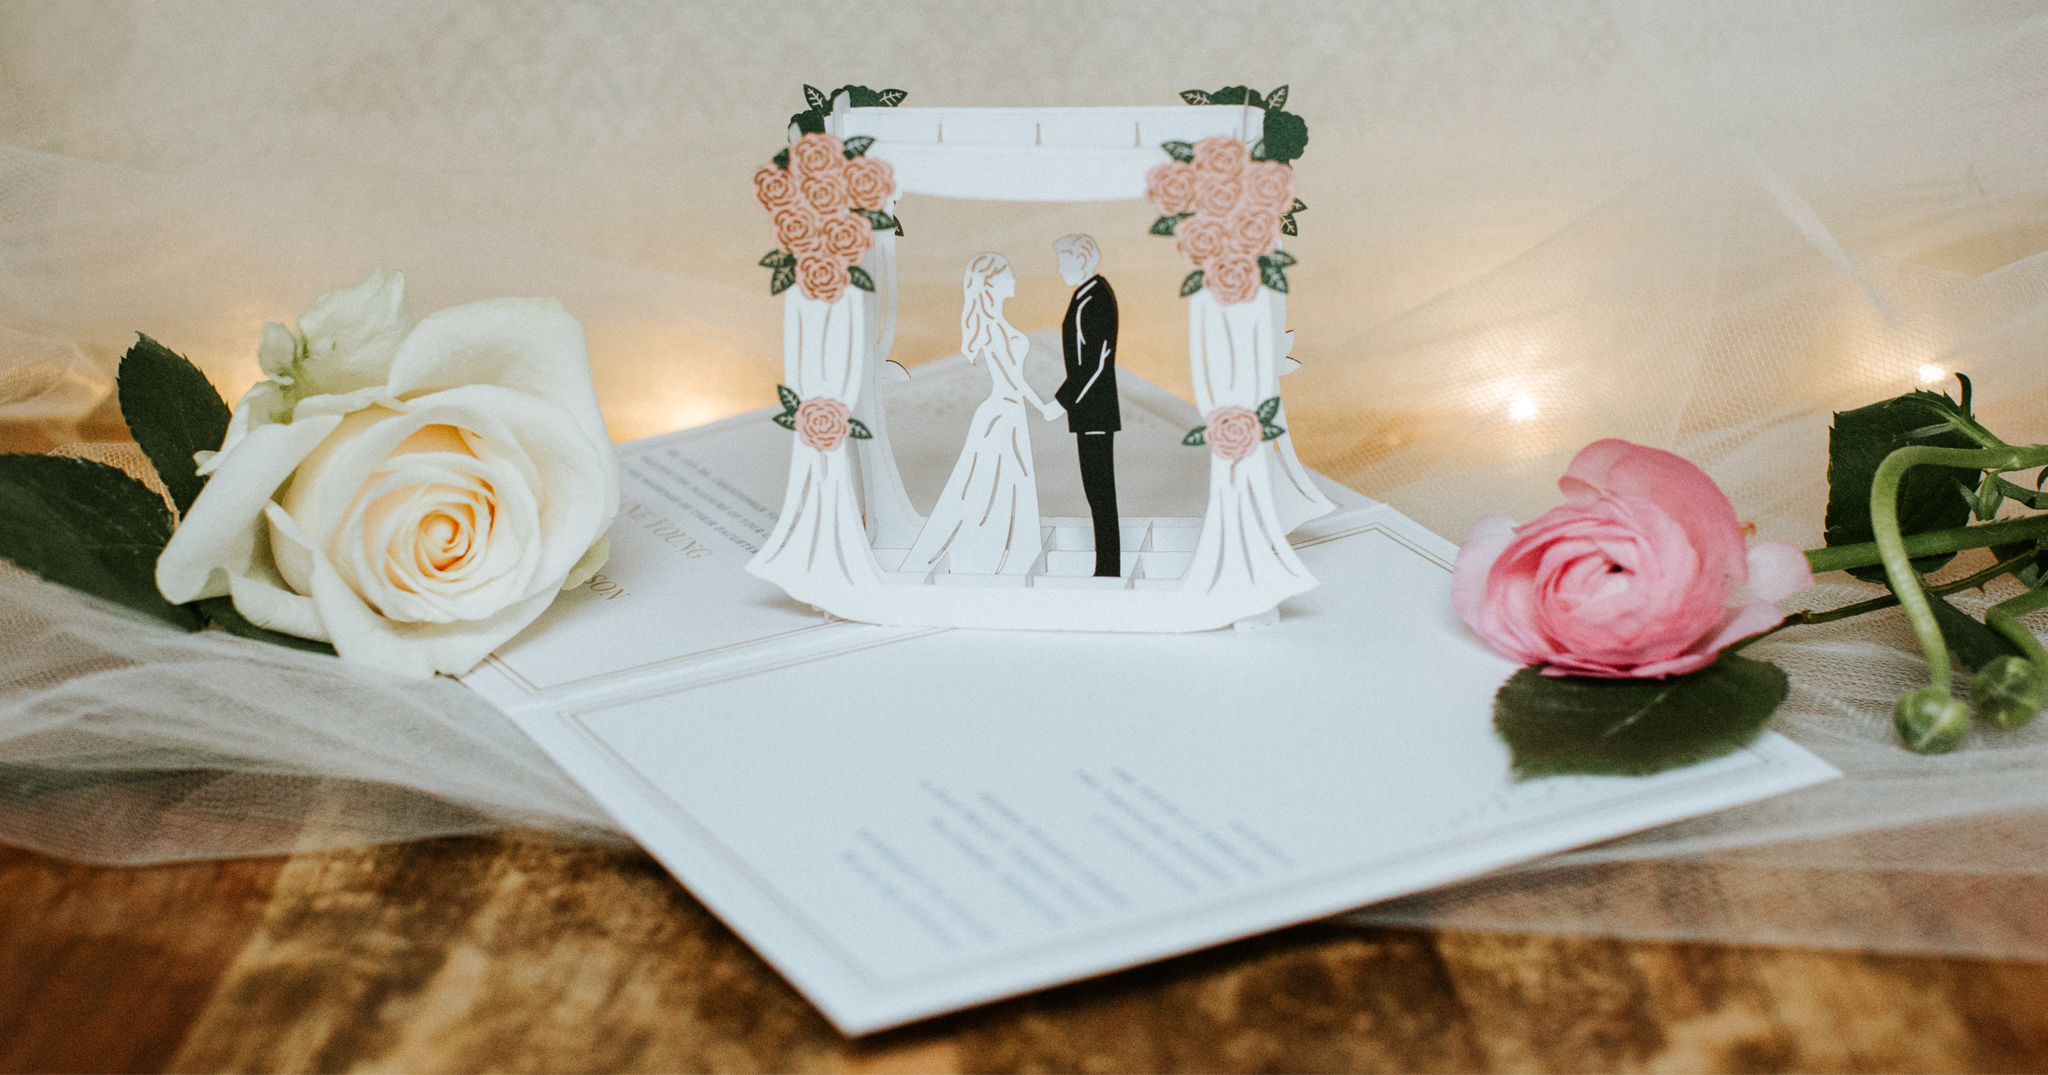 Want Your Wedding Invitations to Pop? Introducing Lovepop's Pop-Up Wedding Invitations - BridalPulse